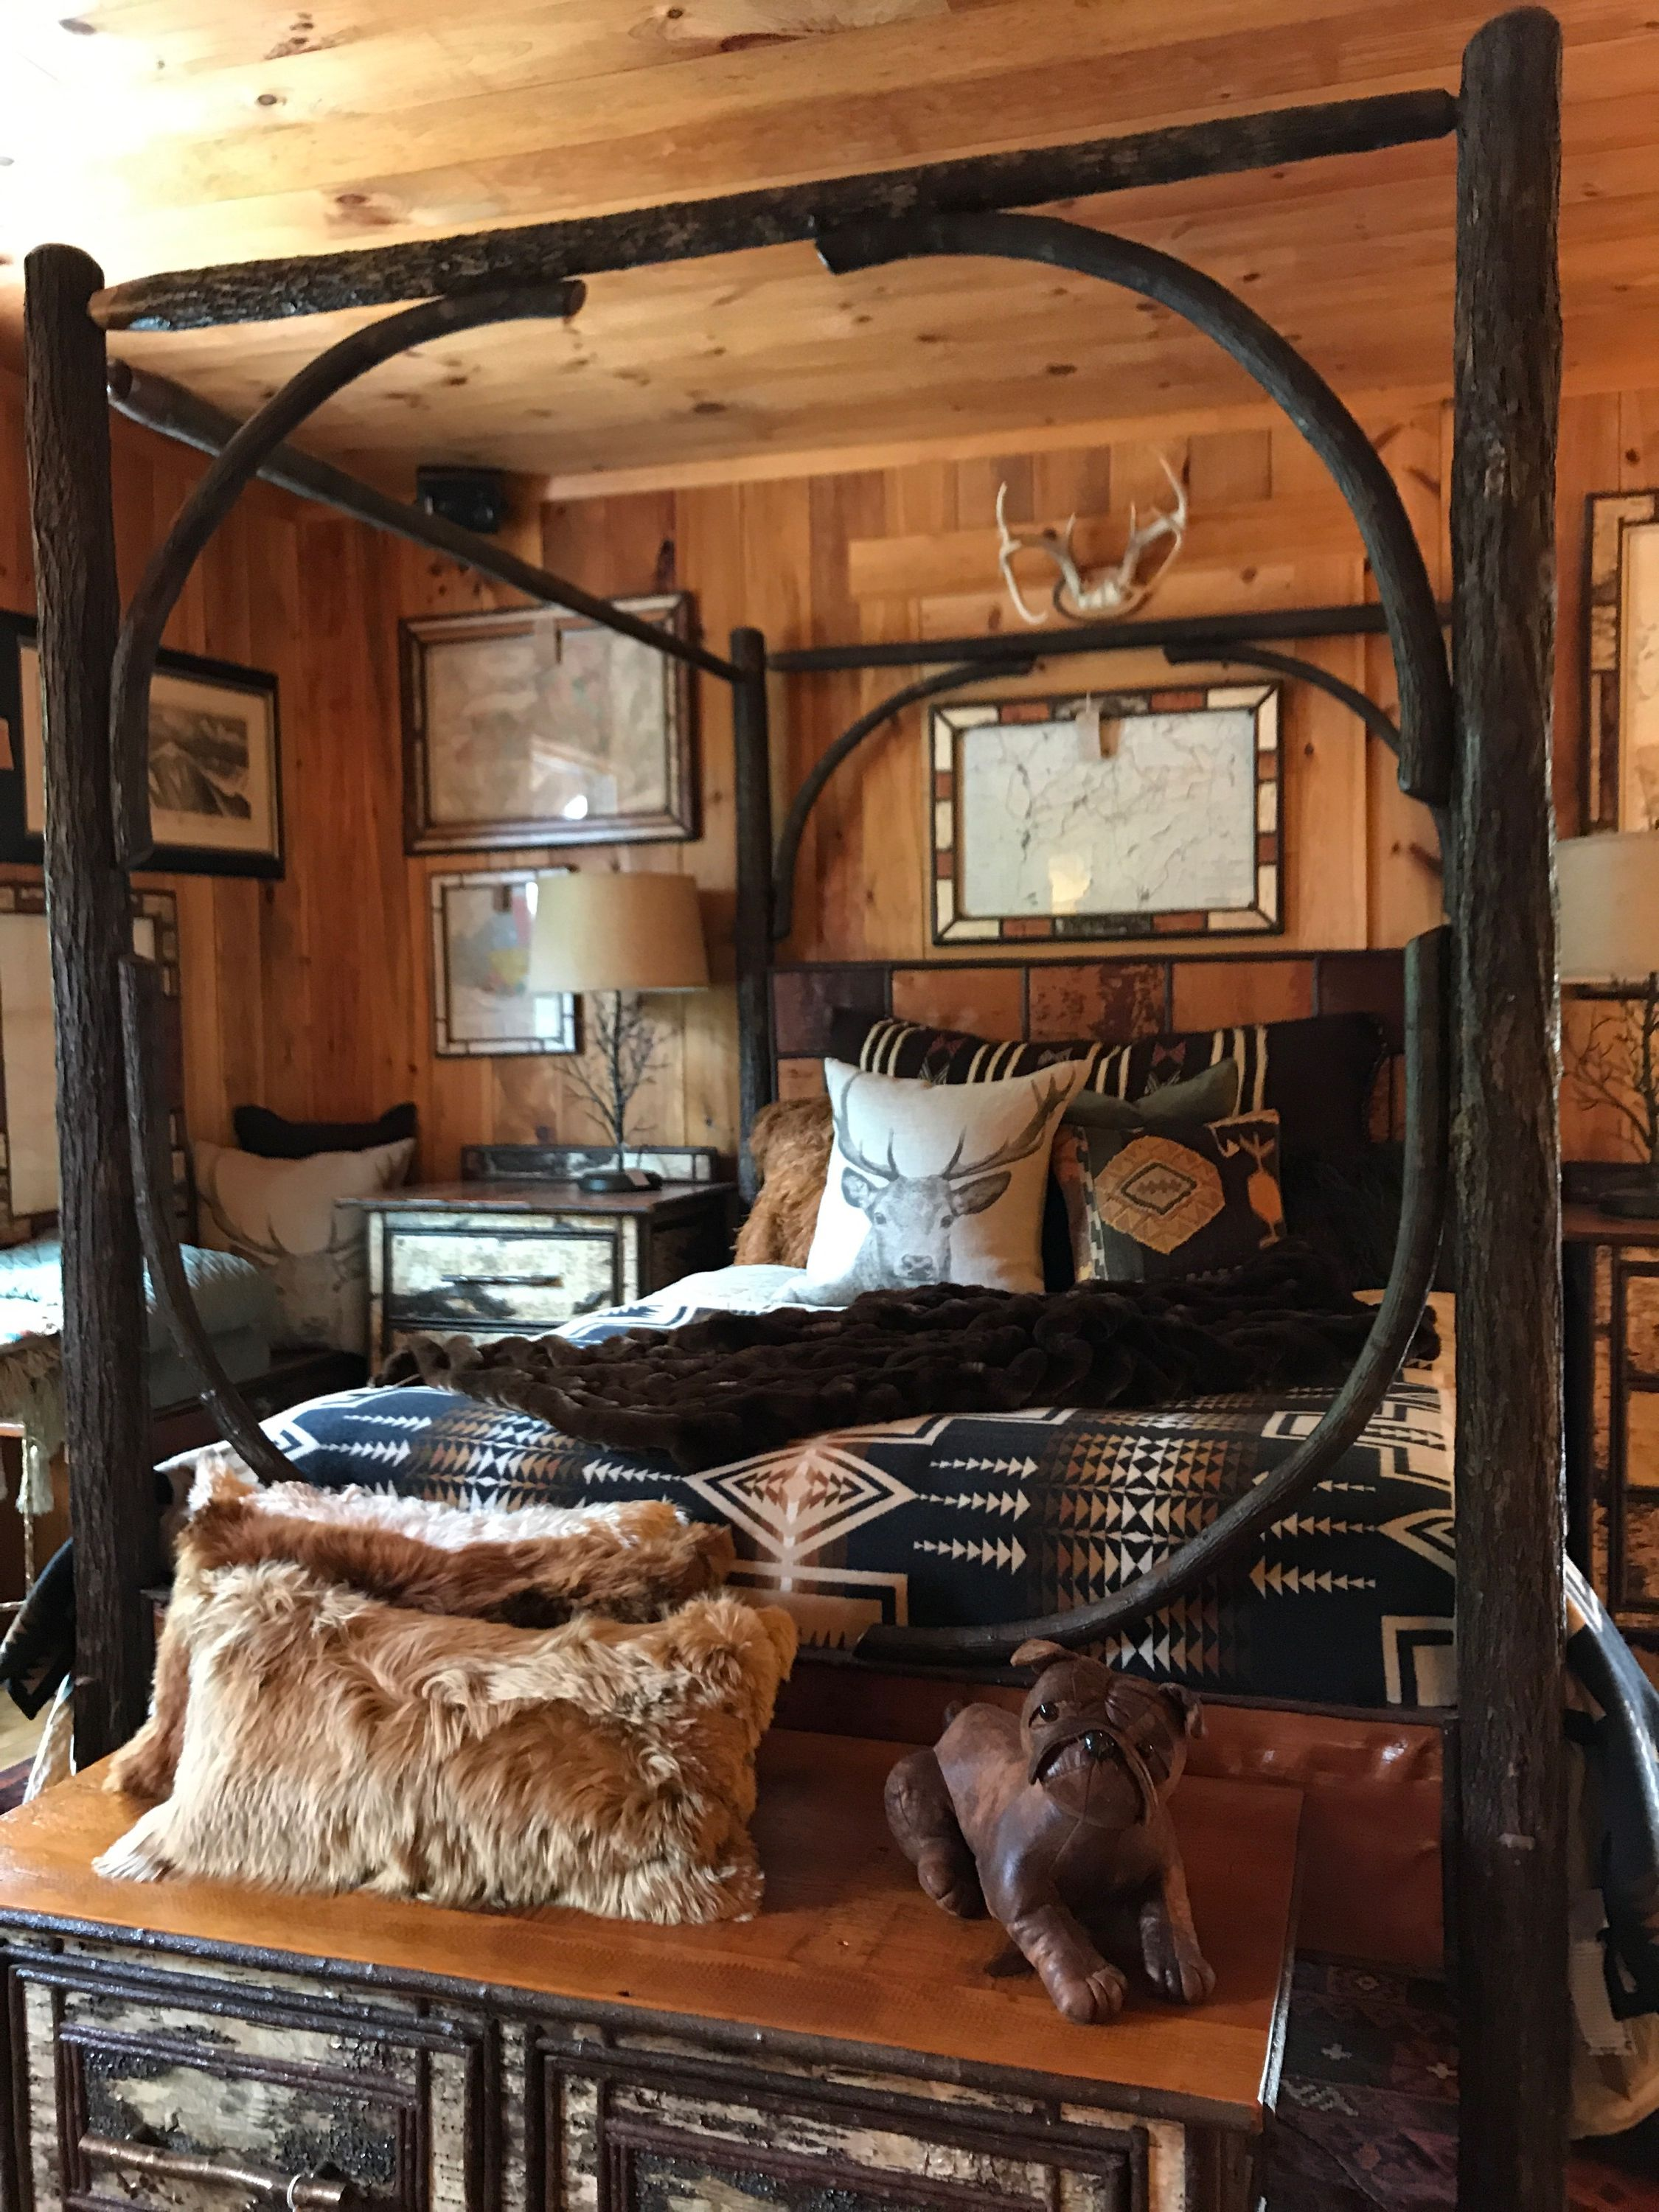 Sentinel Canopy Bed By Darkbrook Rustic Goods   Handcrafted In Keene, NY In  The Adirondacks